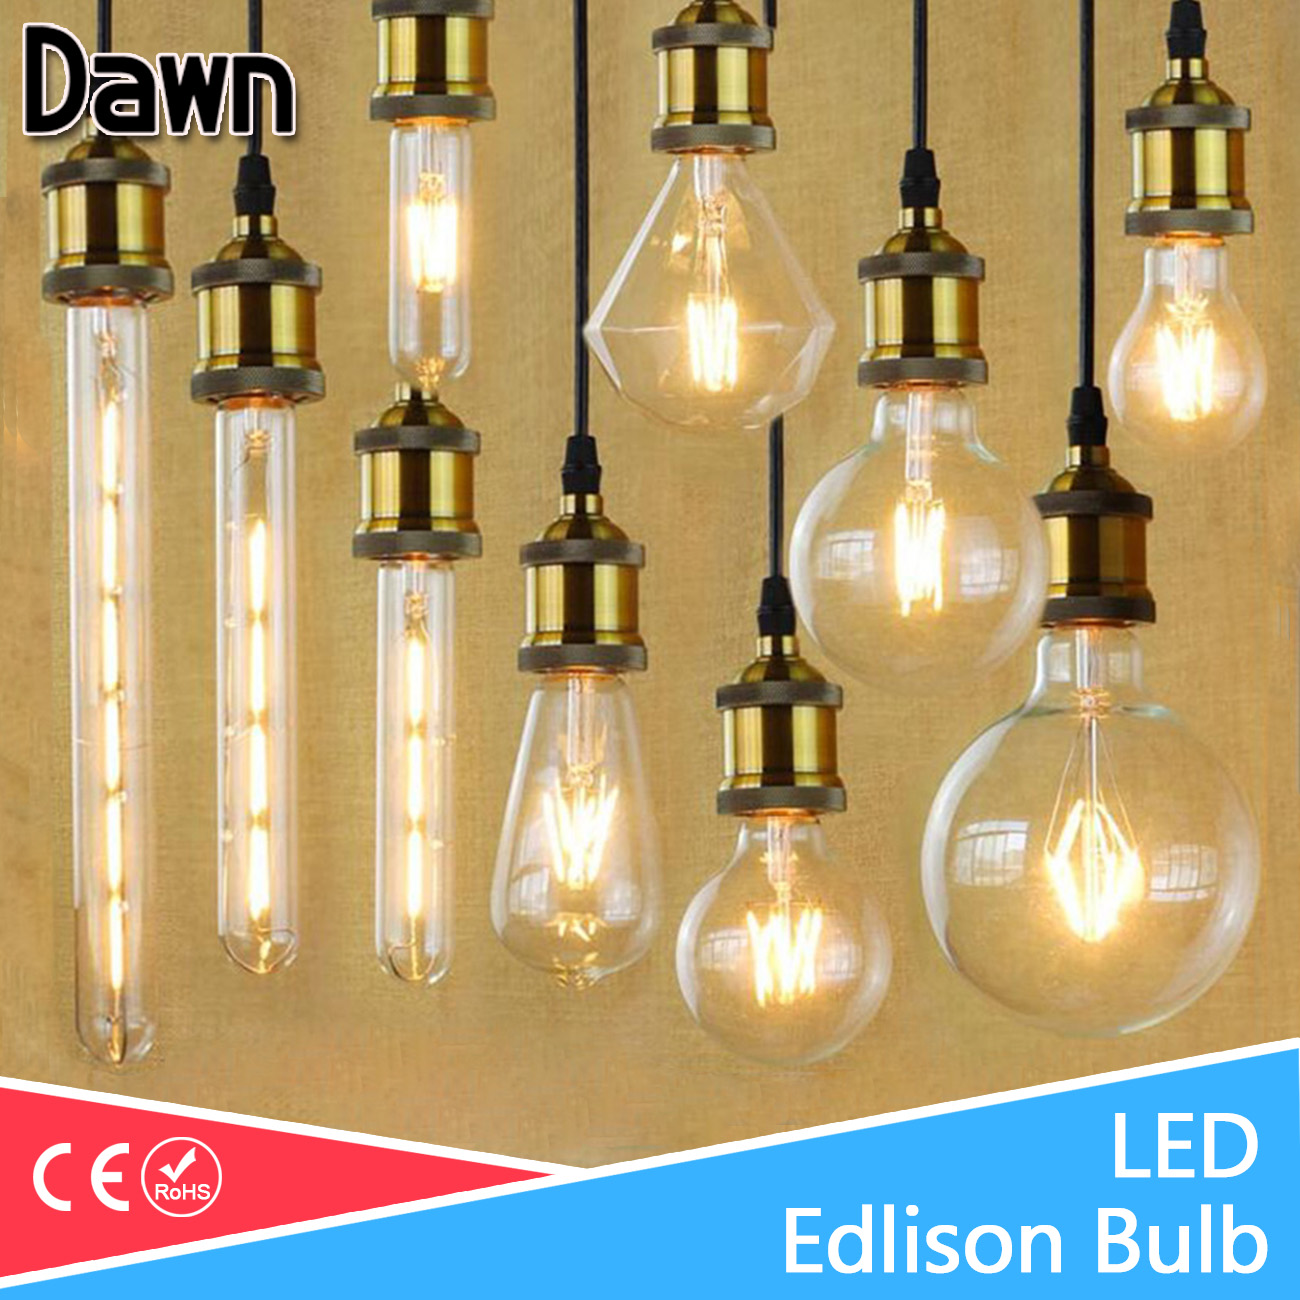 Lampada LED Filament Glass Light Edison Blub Lamps 220V LED Edison chandelier E14 E27 240V Vintage Led Bulb 2W 4W 6W 8W 12W high brightness 1pcs led edison bulb indoor led light clear glass ac220 230v e27 2w 4w 6w 8w led filament bulb white warm white